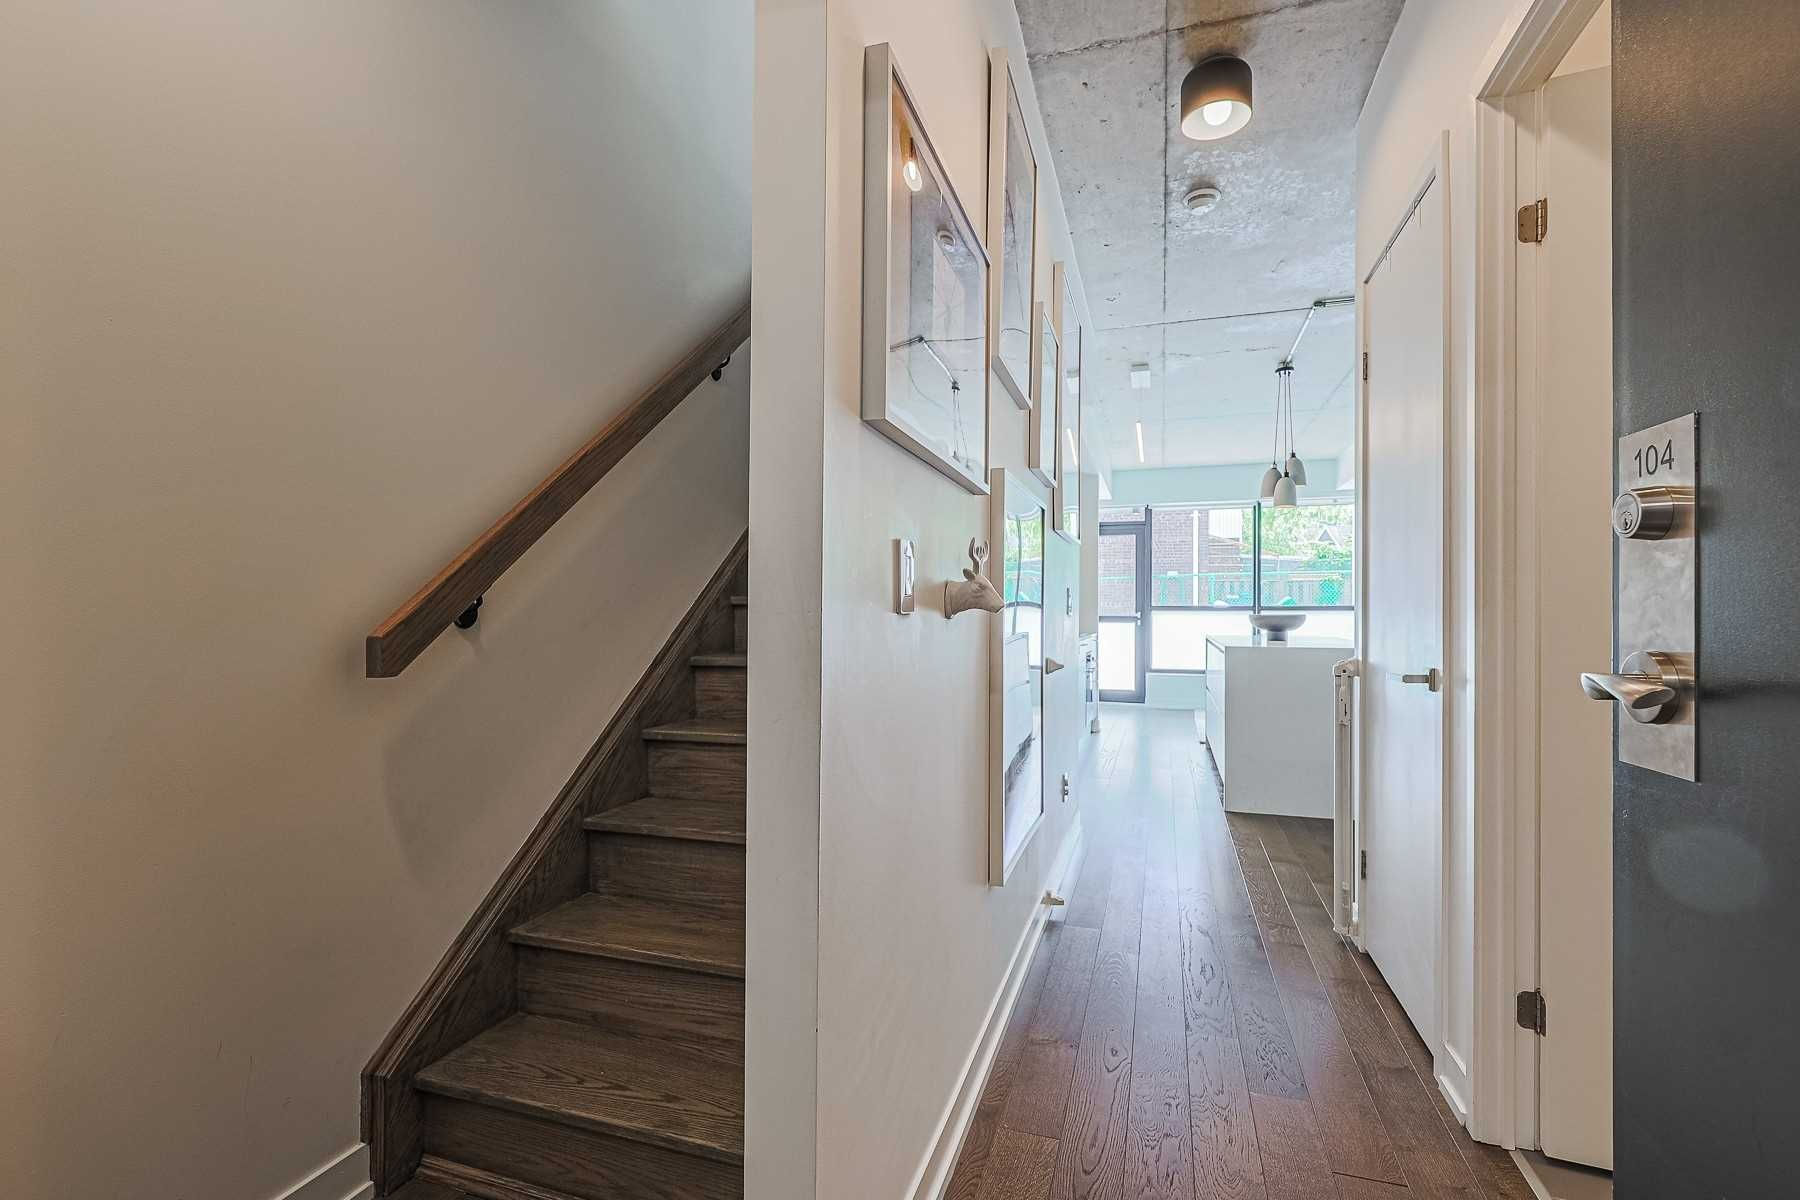 530 Indian Grve, unit 104 for sale in Toronto - image #2